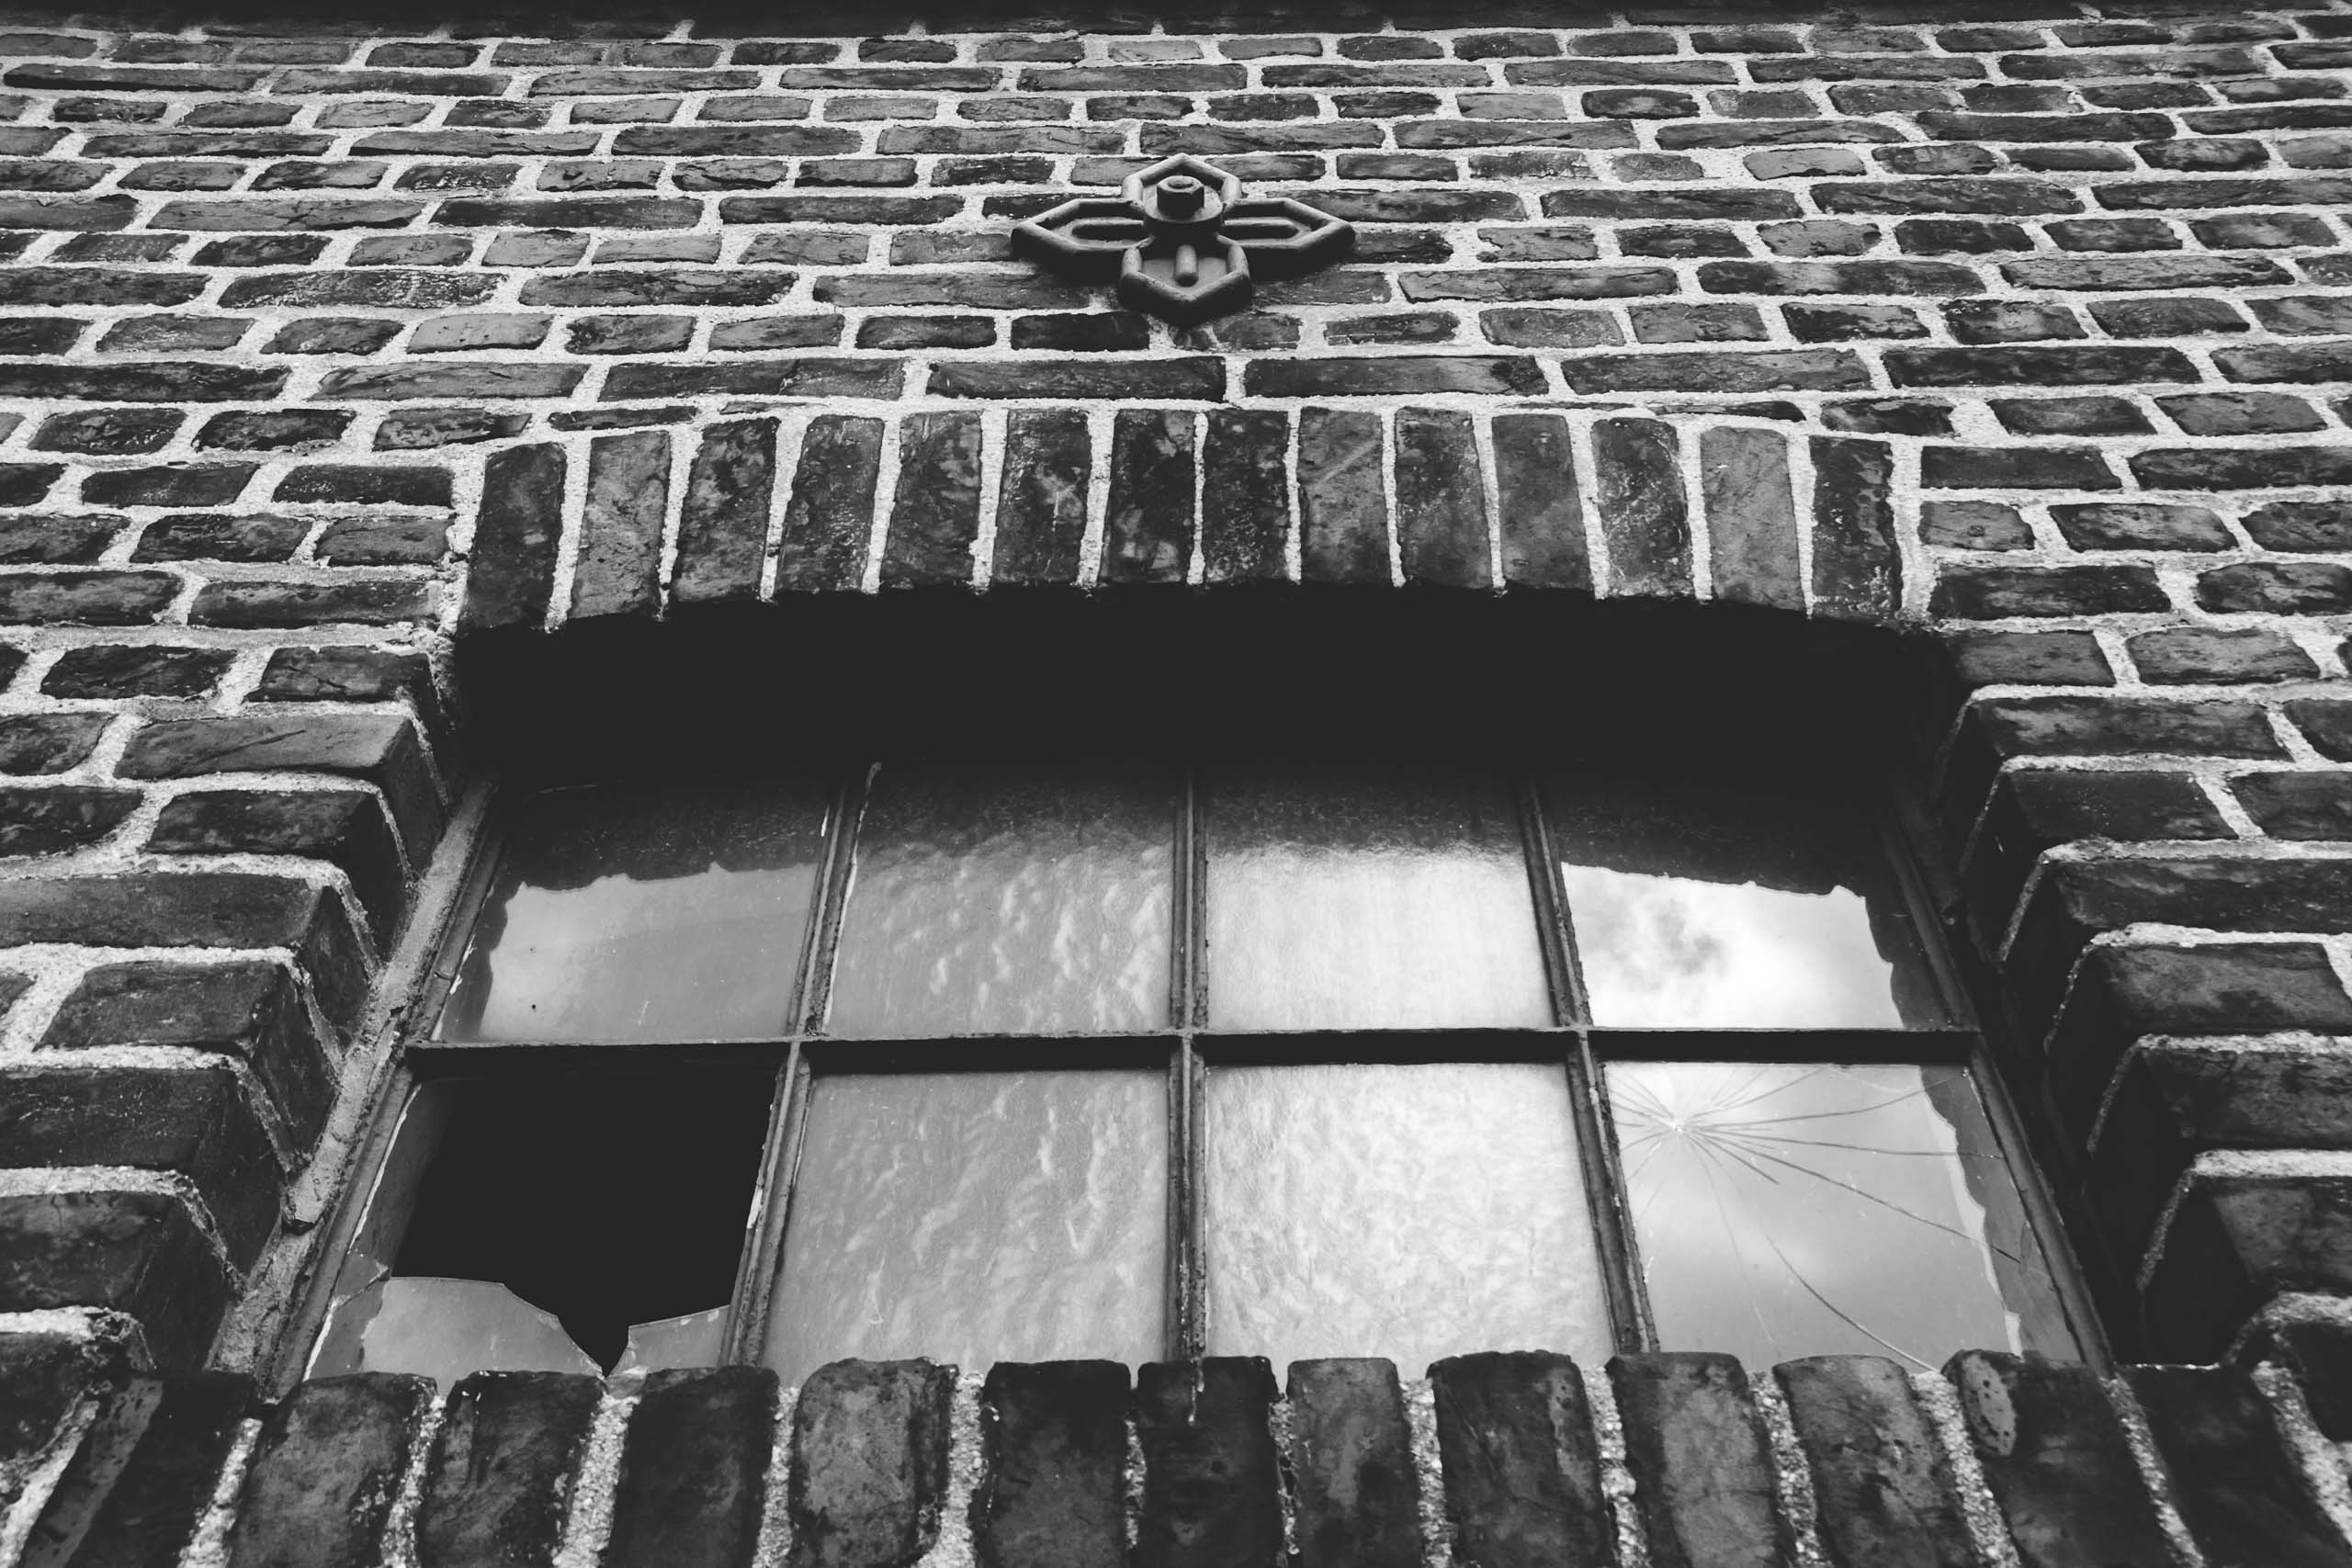 immerath_lost place (7)